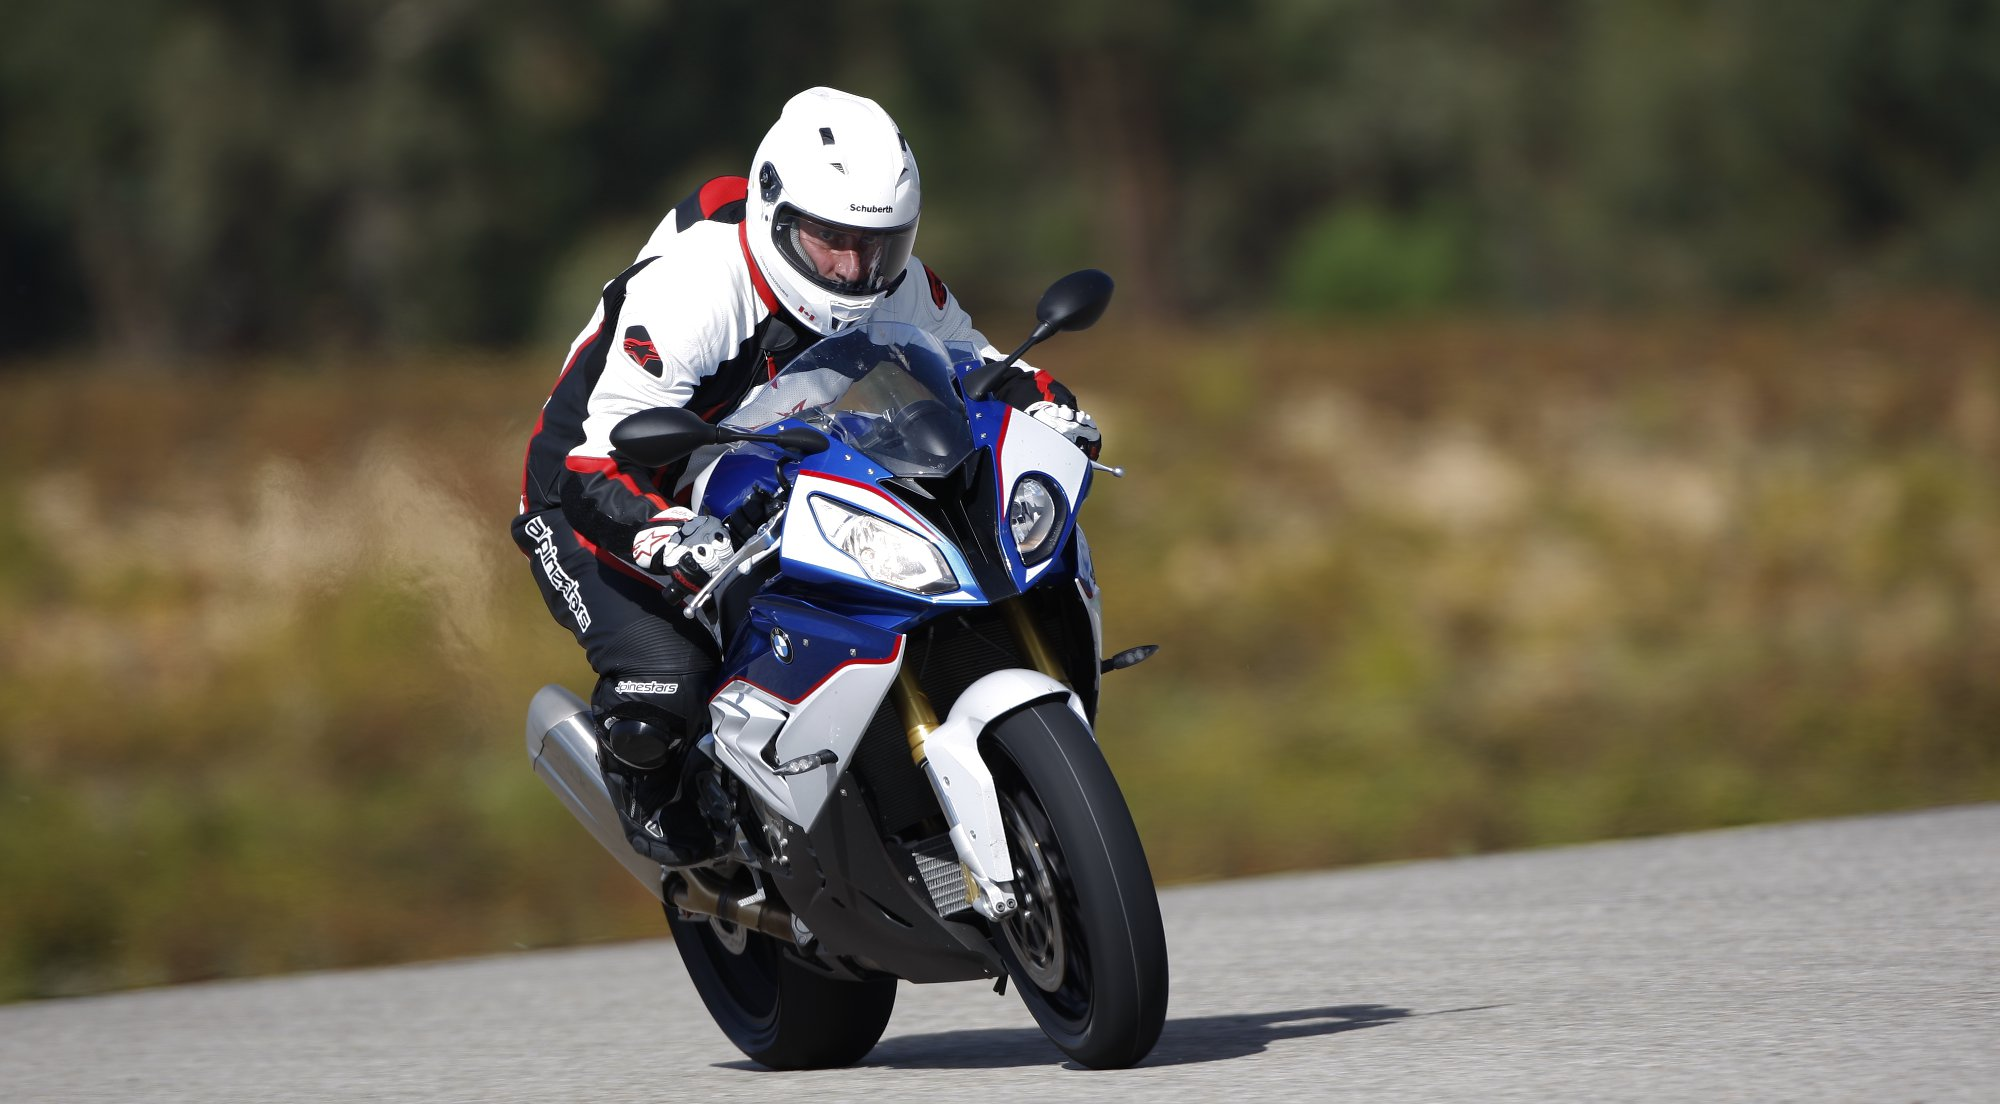 From Germany, with love: Costa rides the 2015 S1000 RR   Canada Moto Guide